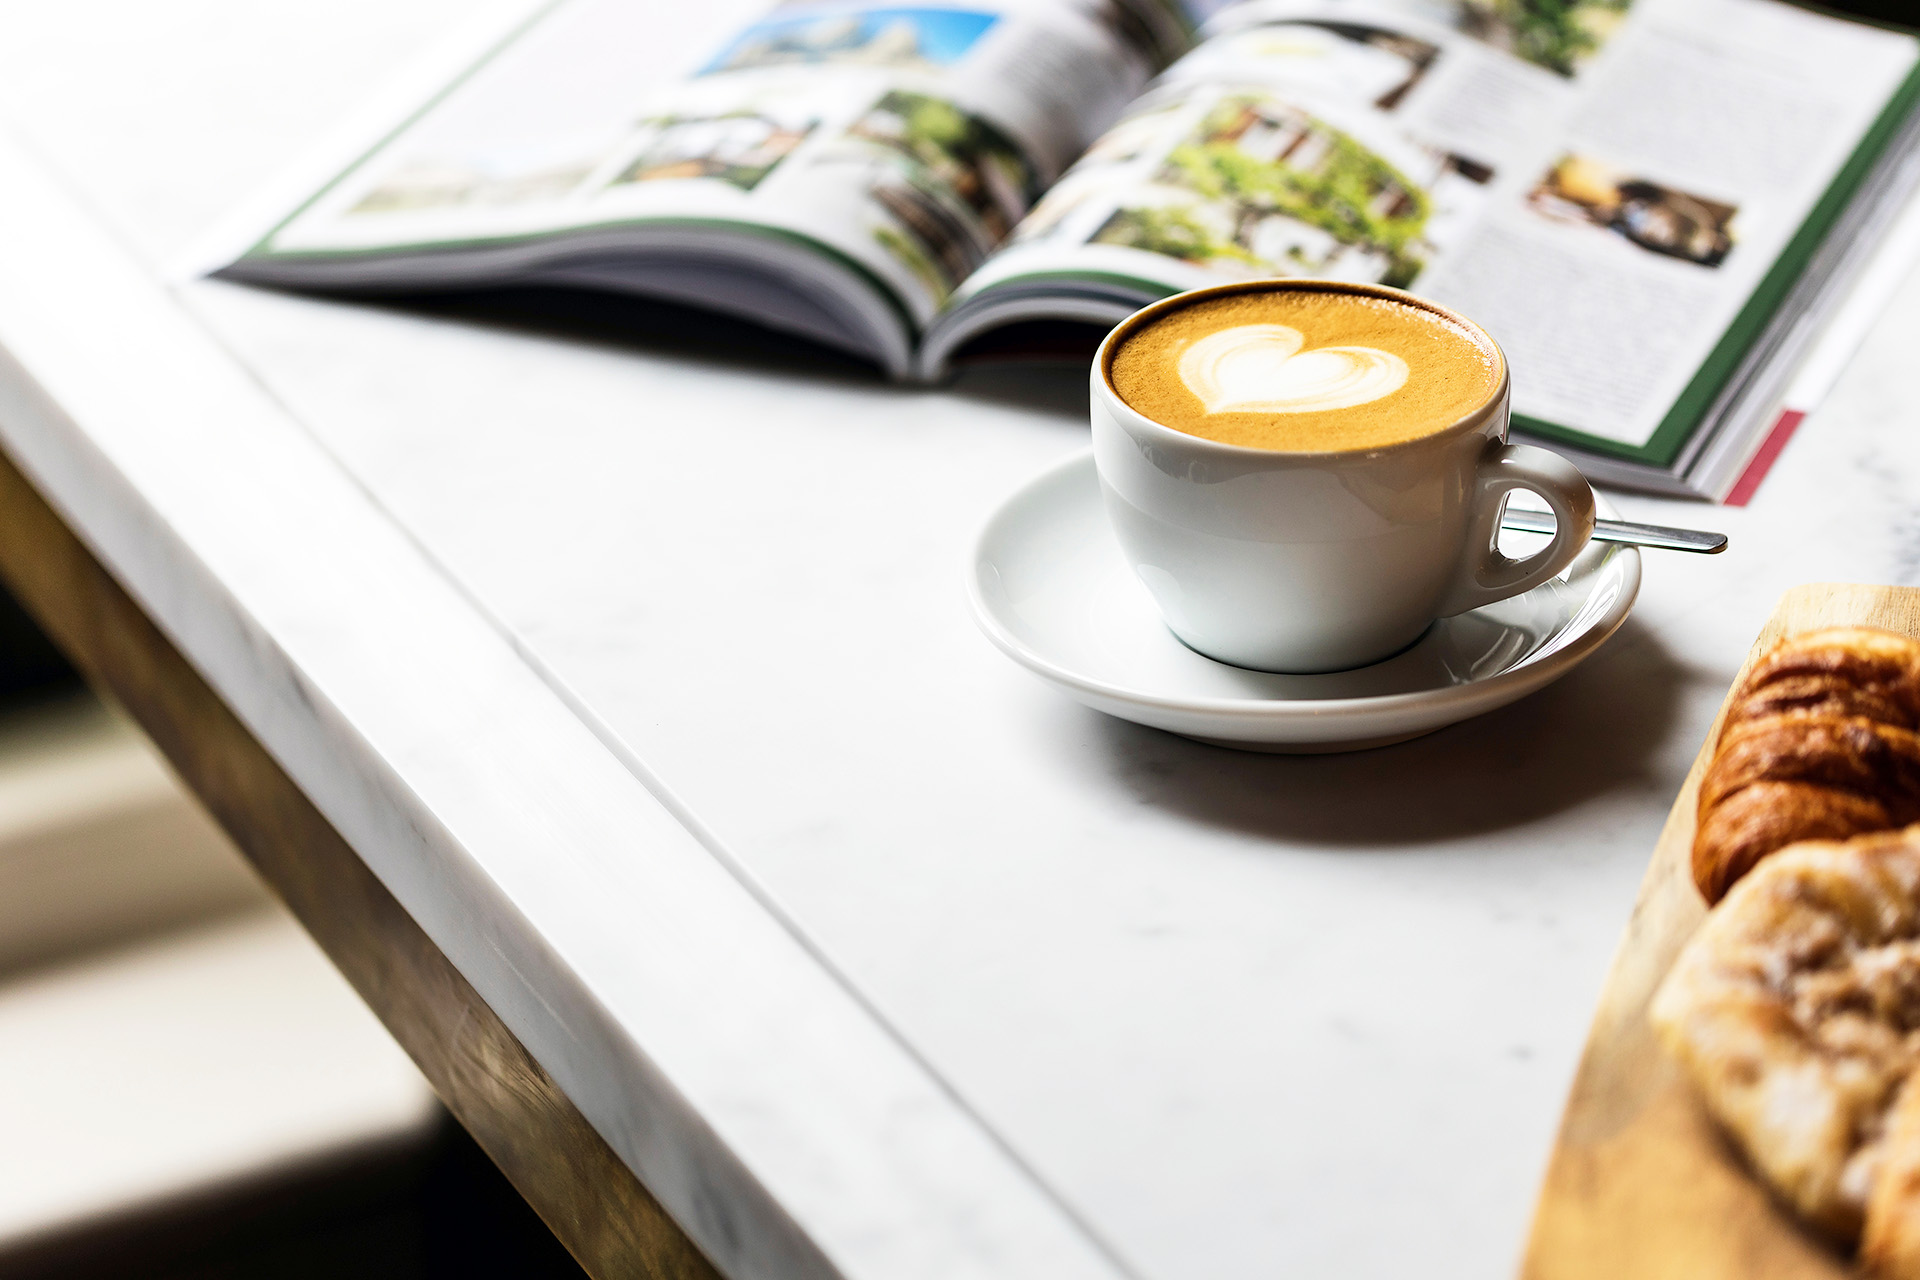 Low cost and practical self care tips, including a cup of your favourite coffee